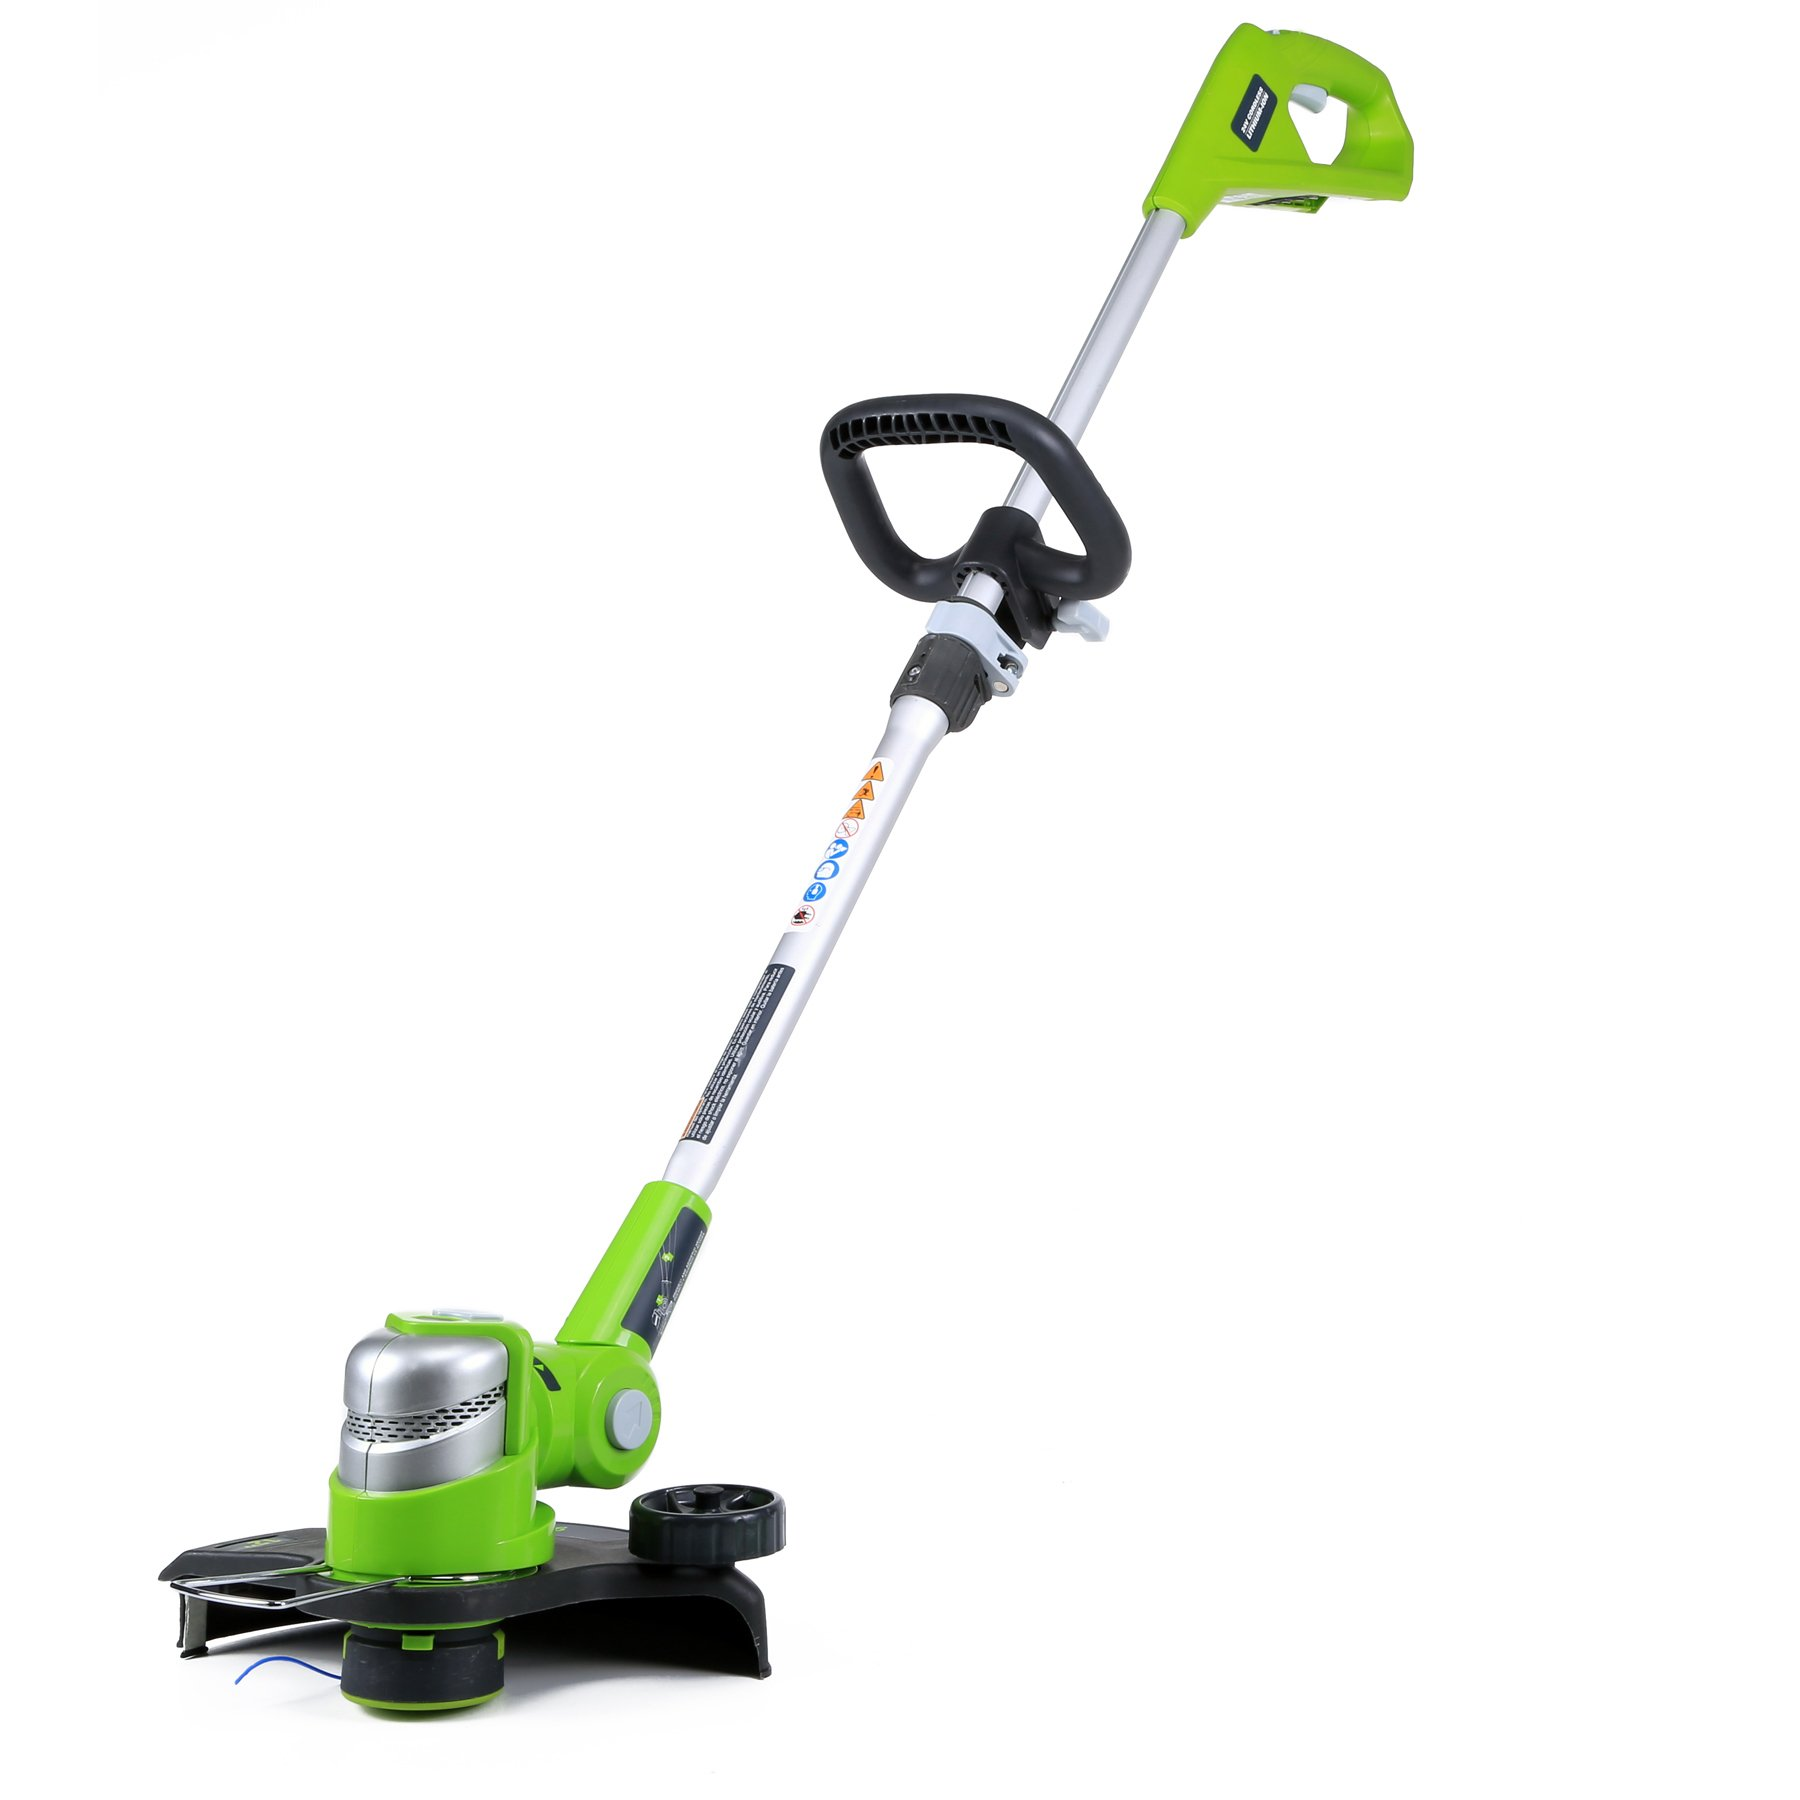 Greenworks 12-Inch 24V Cordless String Trimmer/Edger, Battery Not Included 2100302